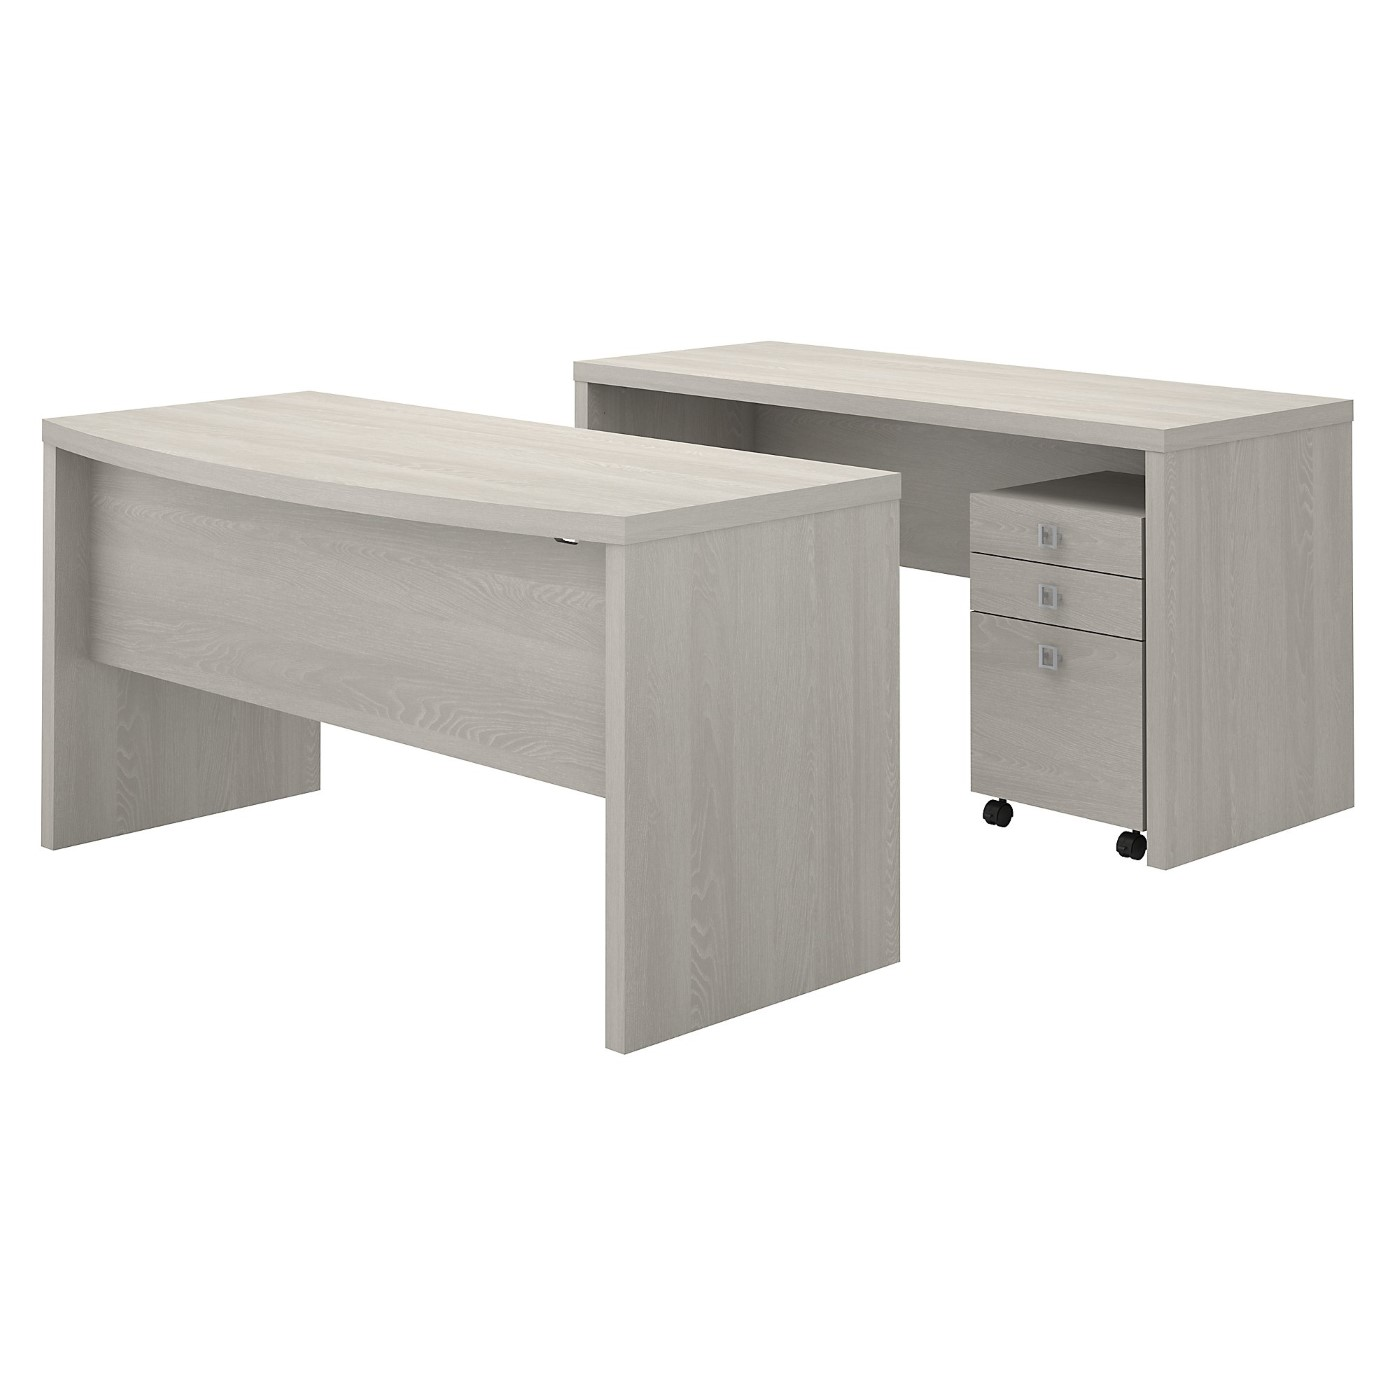 </b></font><b>The kathy ireland� Echo Bow Front Desk and Credenza with Mobile File Cabinet is Sustainable Eco Friendly Furniture. Includes Free Shipping! 30H x 72L x 72W</font>. <p>RATING:&#11088;&#11088;&#11088;</b></font></b>